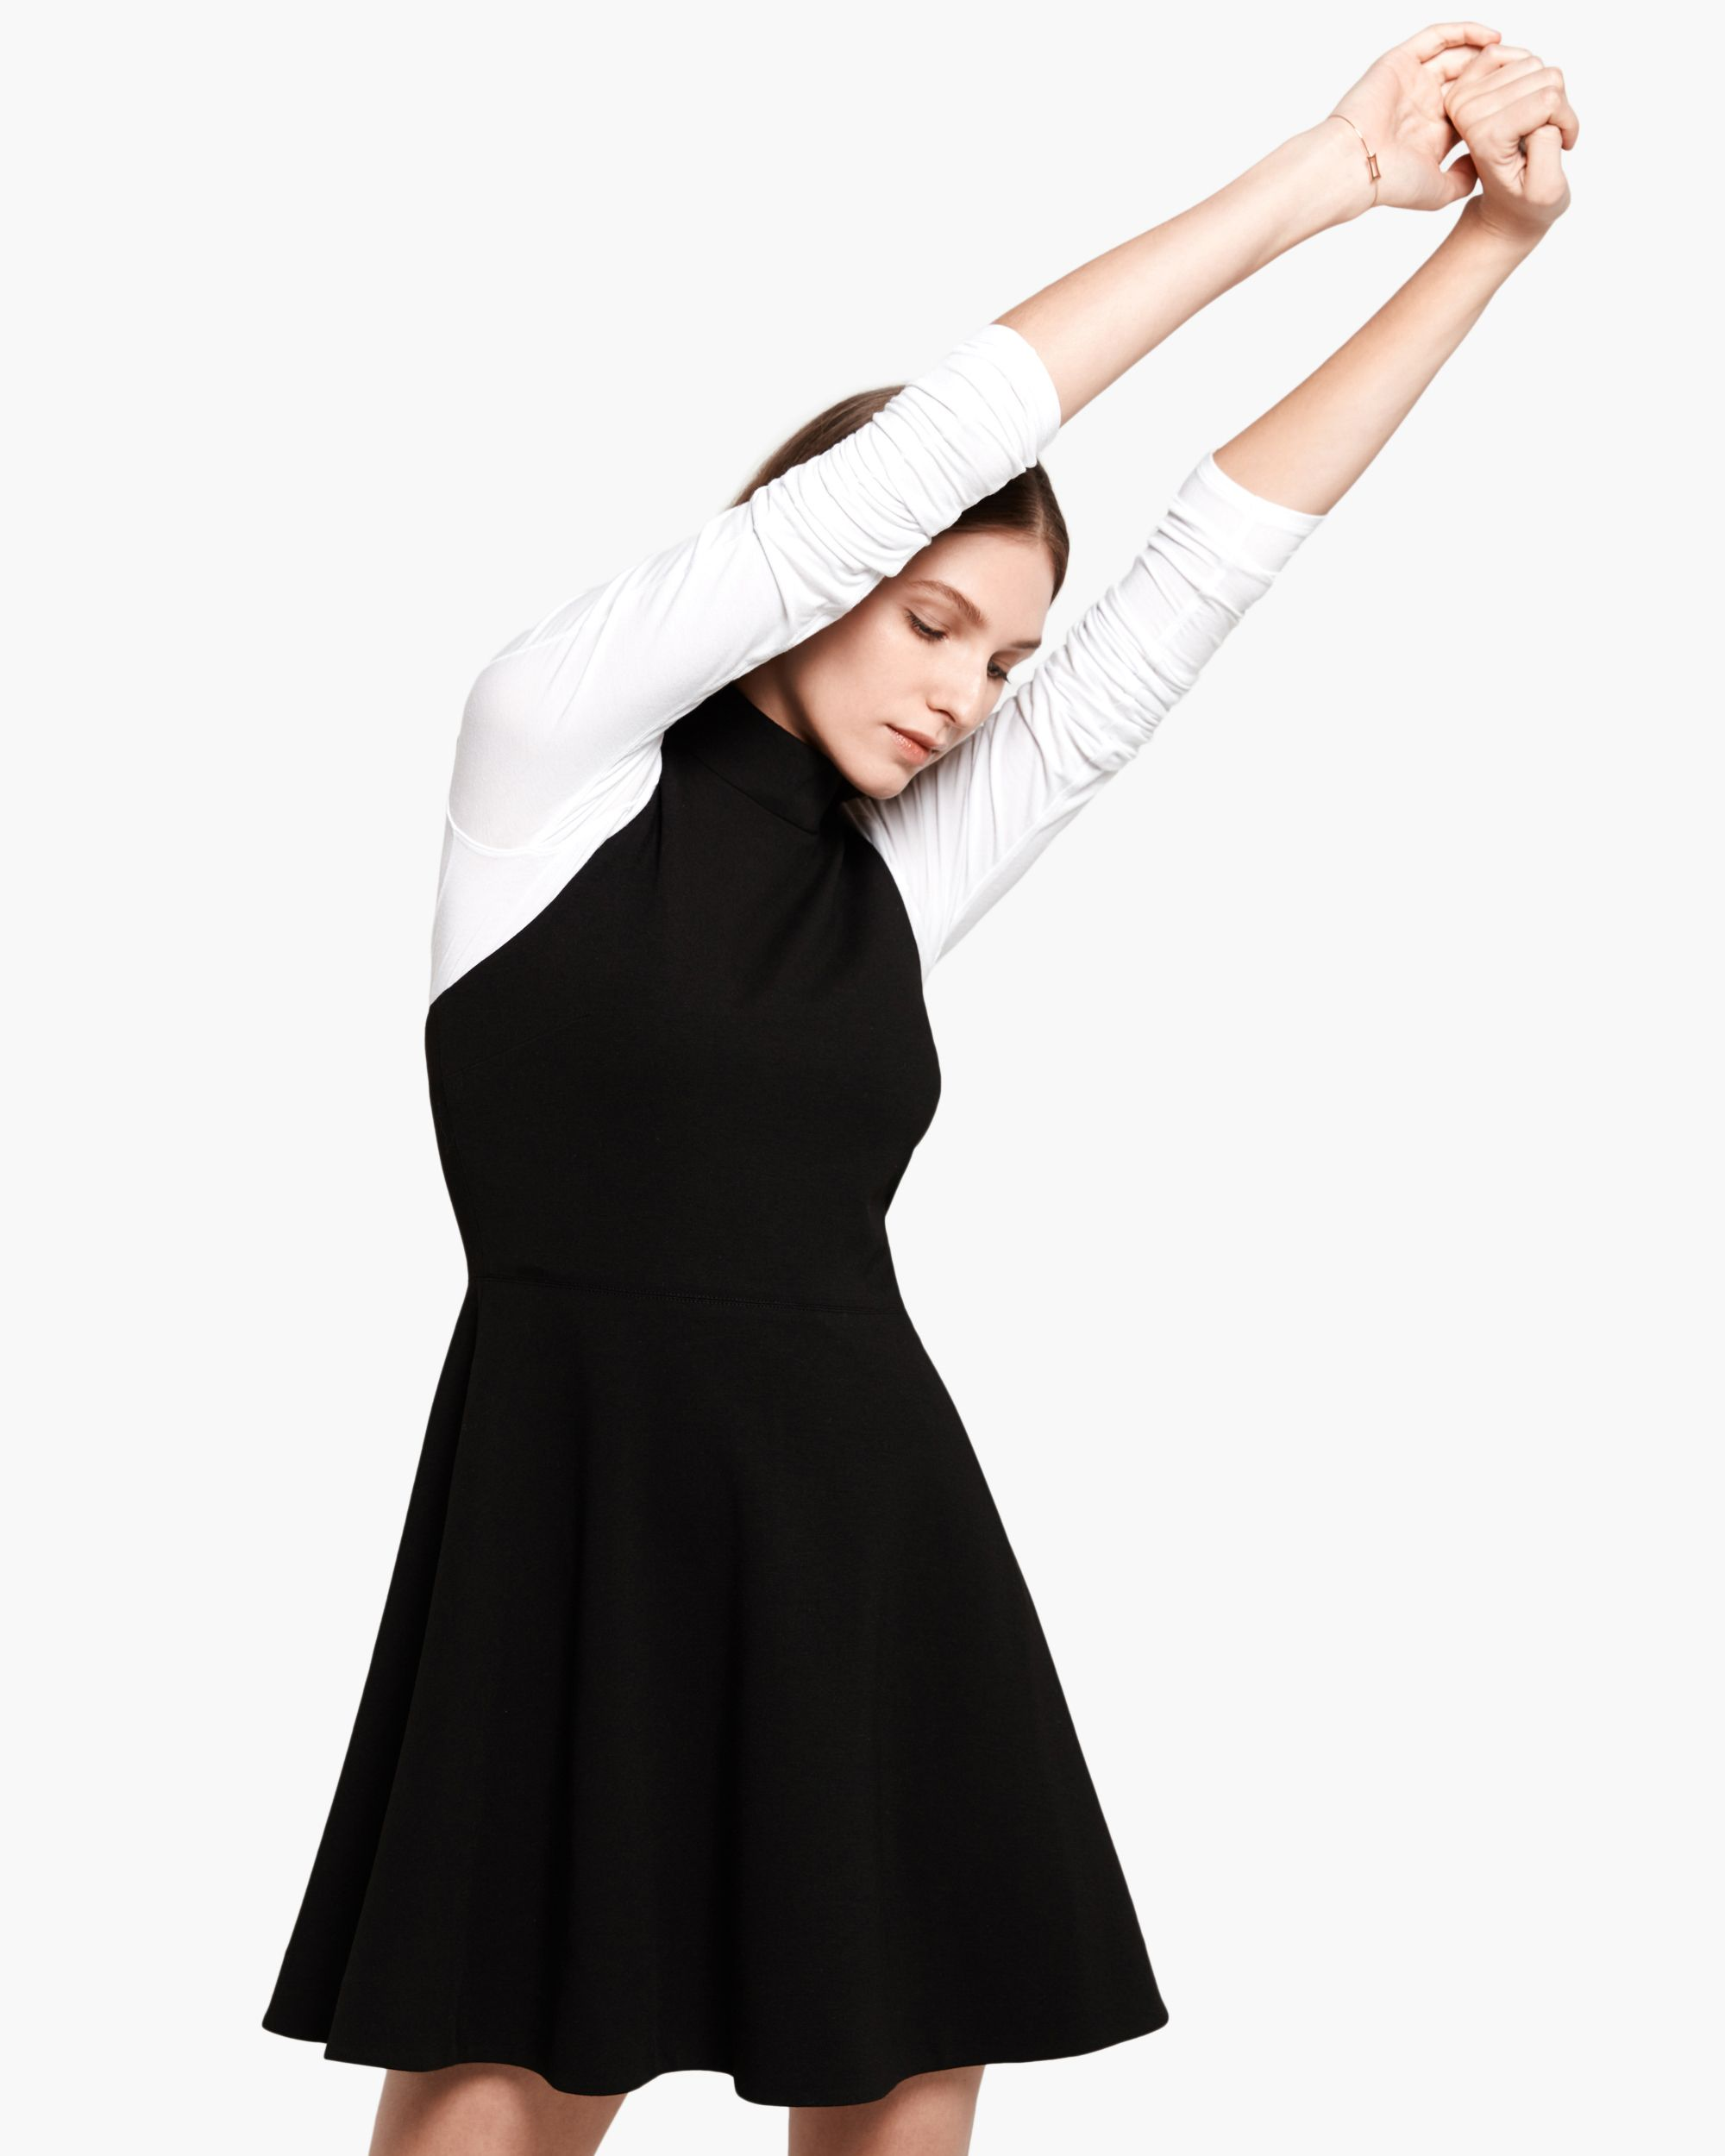 Embrace change meet the monaco dress kit and ace poses and